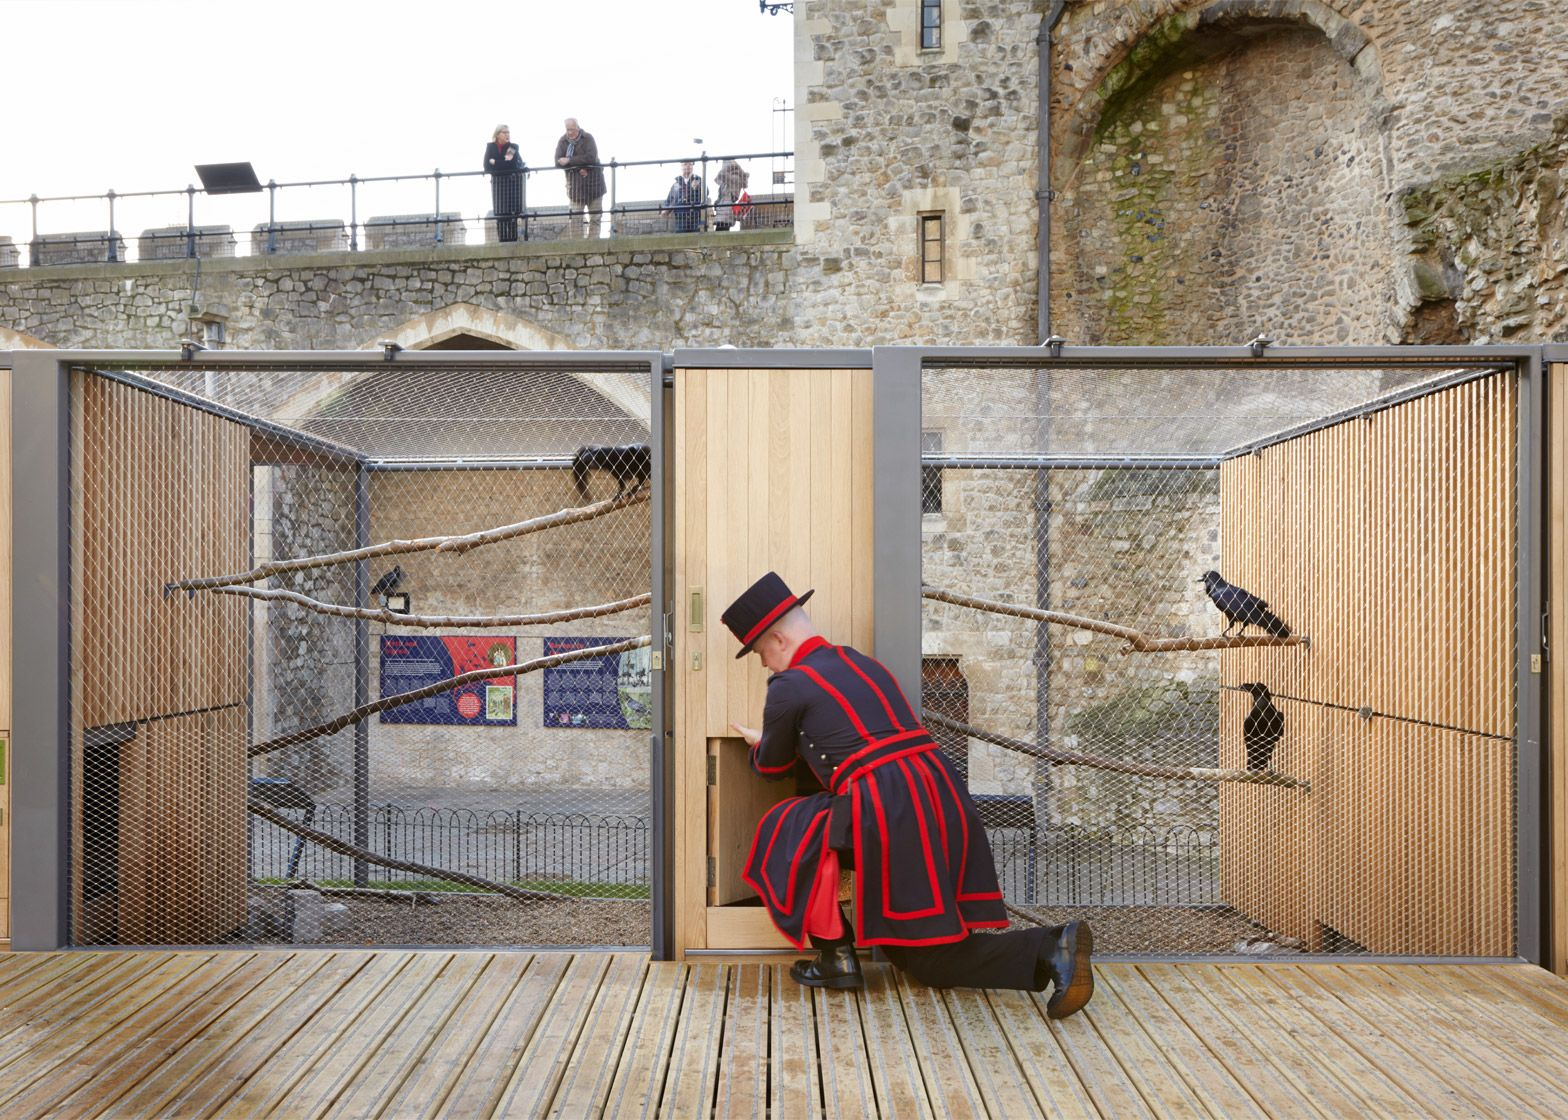 Llowarch Llowarch Architects completes raven enclosure for the Tower of London